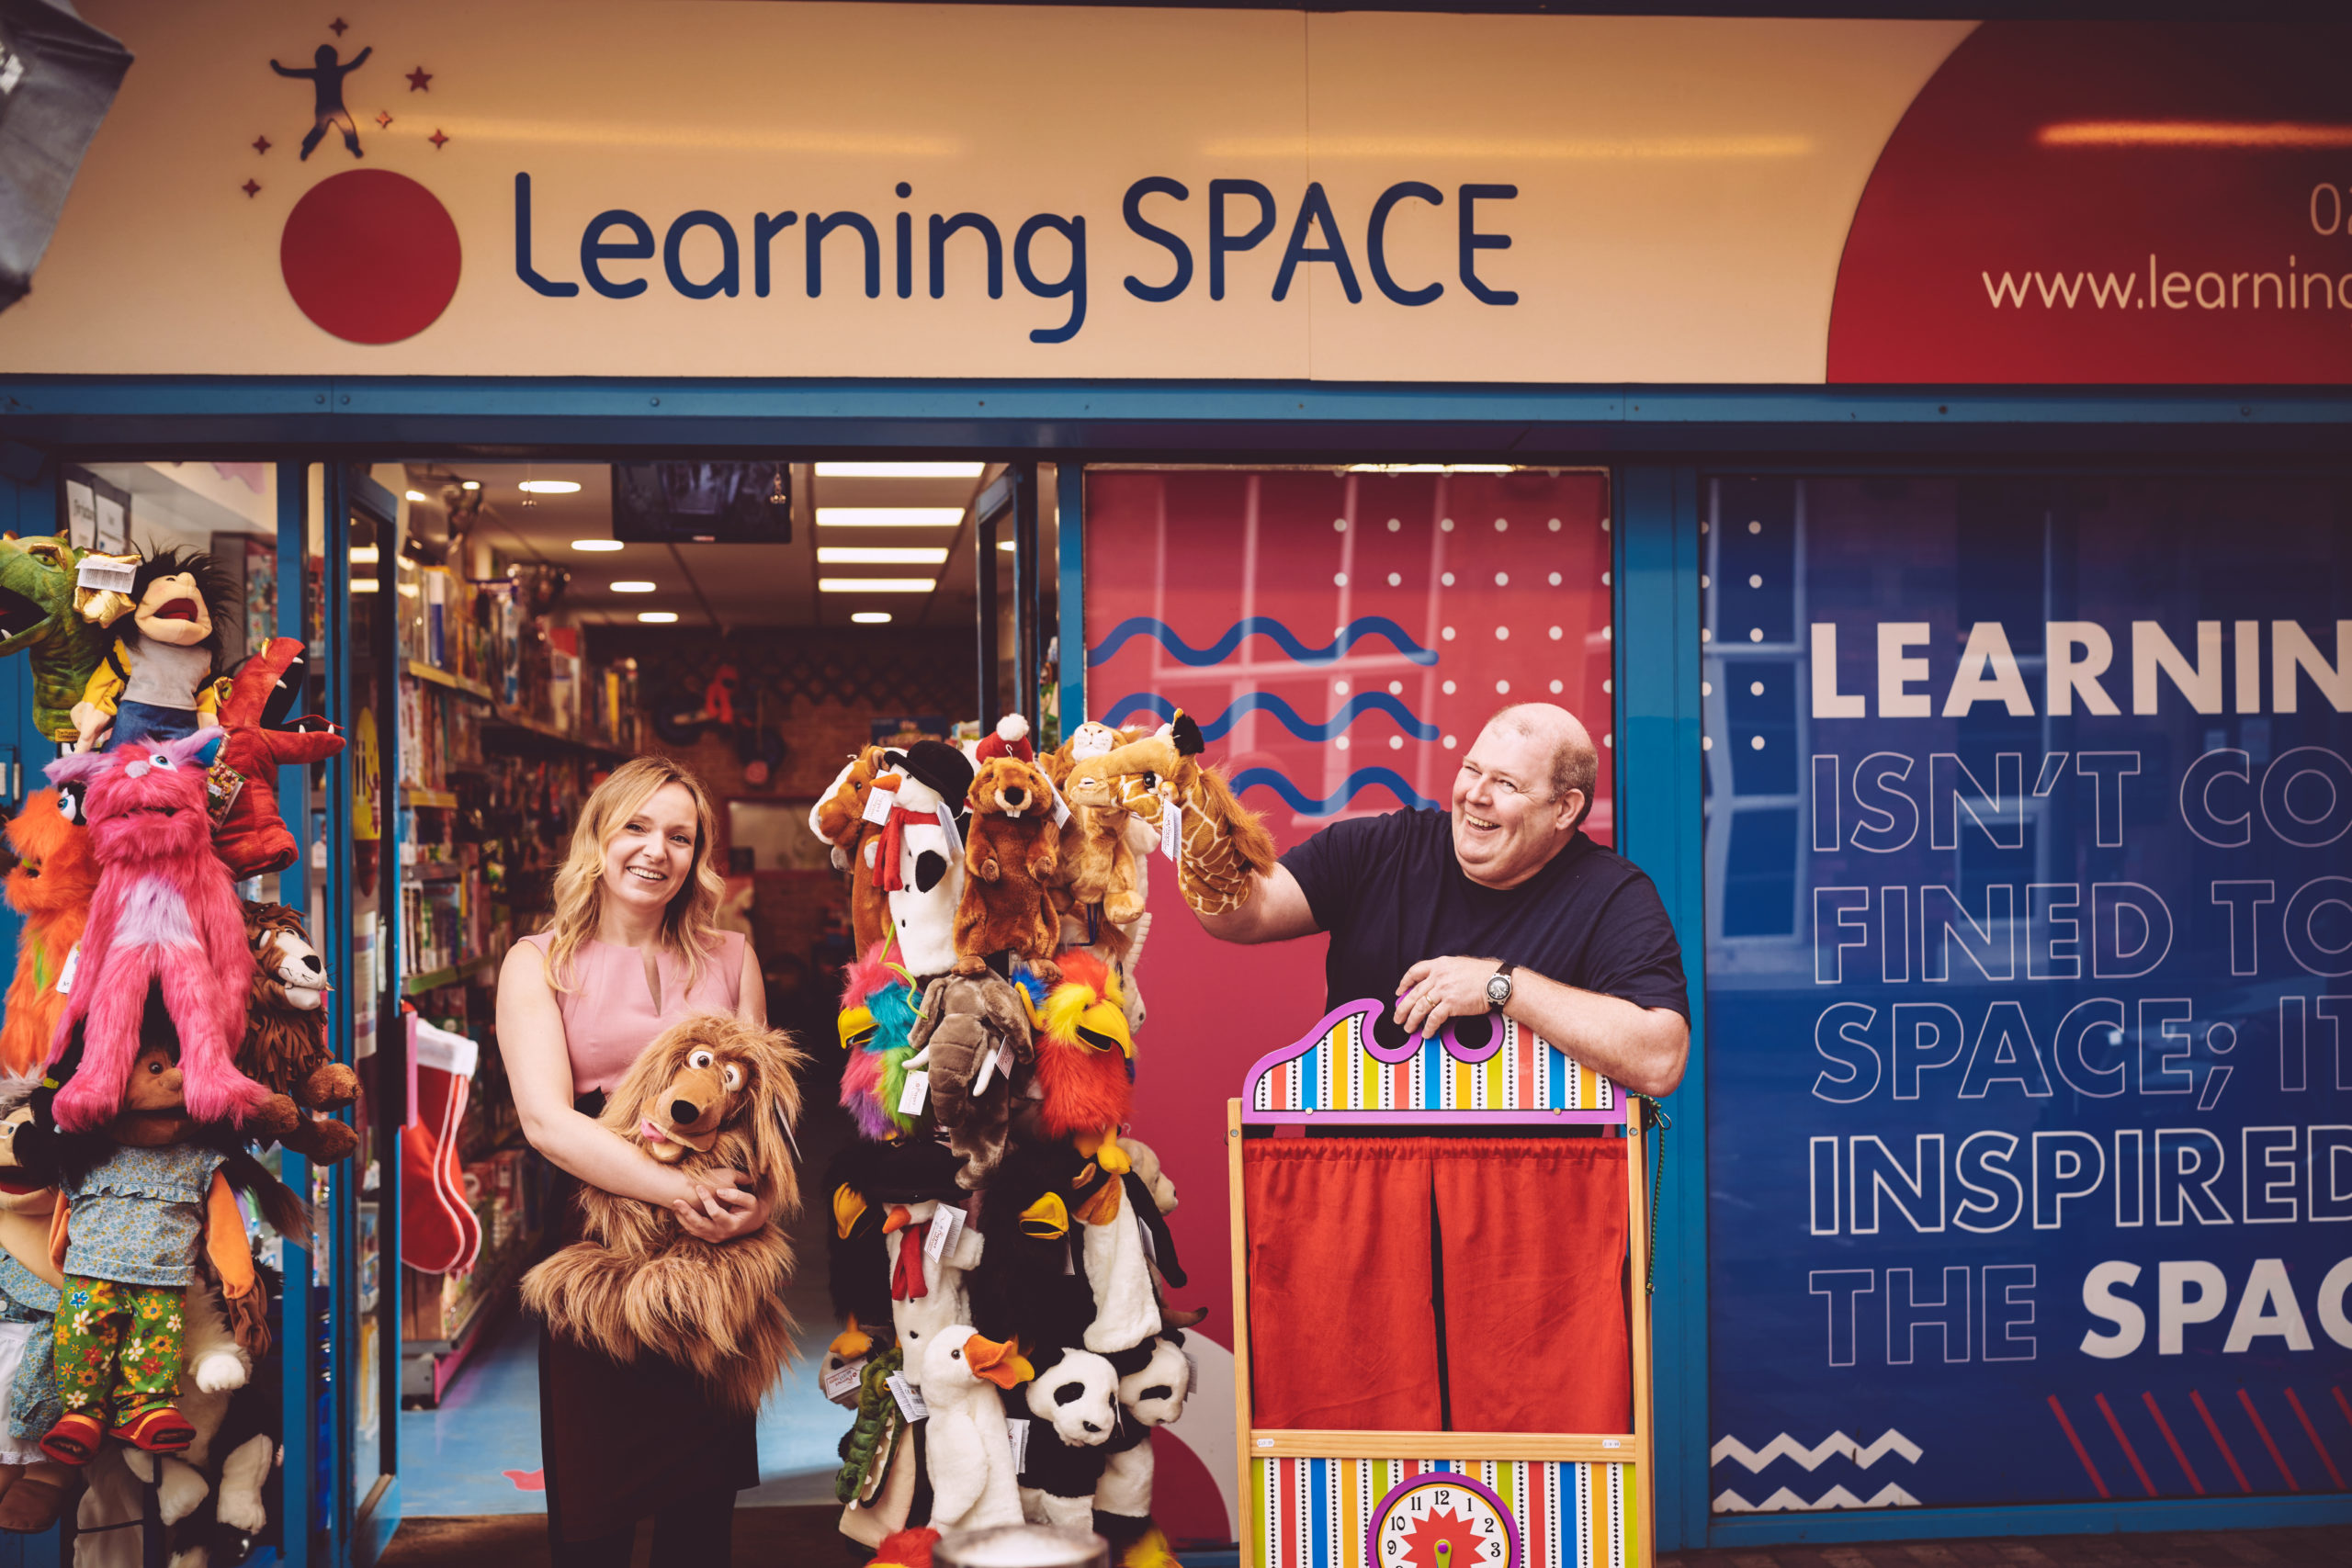 Learning SPACE is an award winning, educational toy and resource company, providing a wide range of inspiring products to meet the needs and interests of children of all abilities.